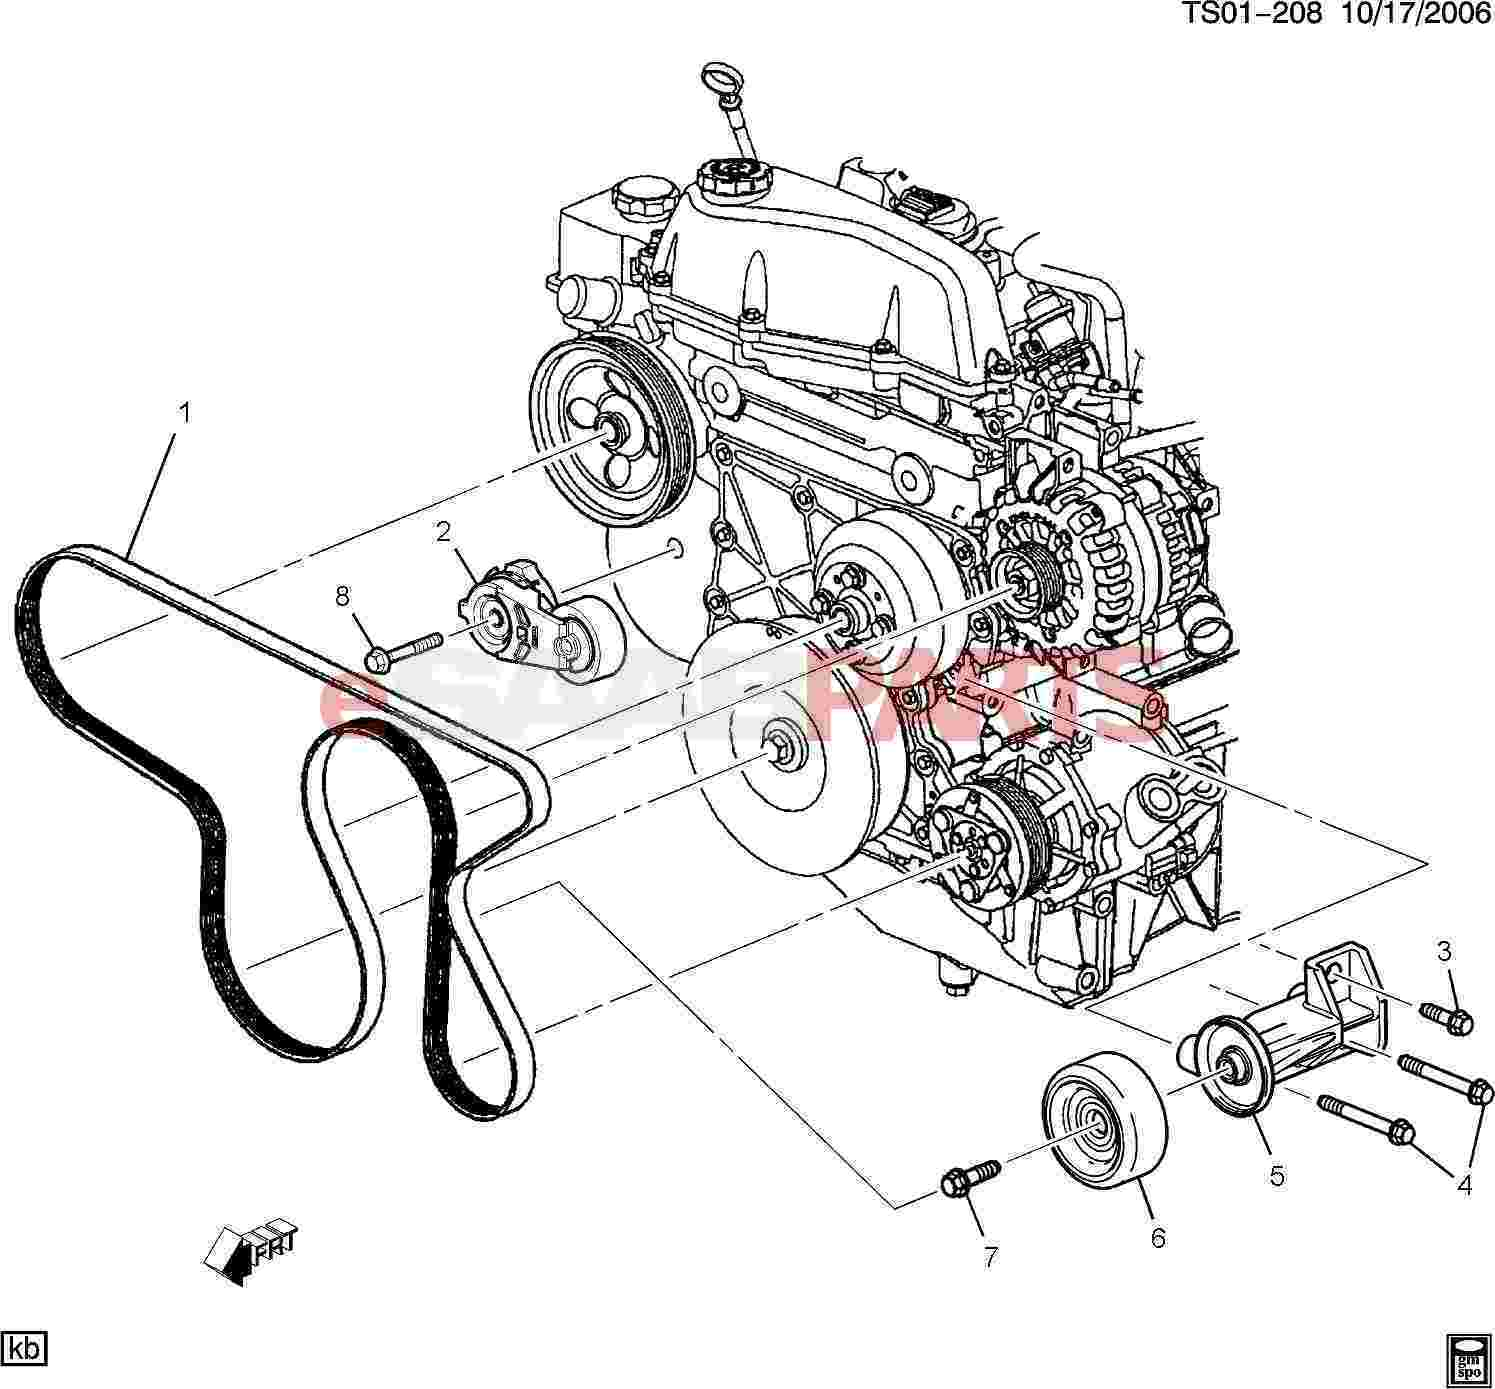 2008 Envoy Engine Diagram Oil System - Wiring Diagram General